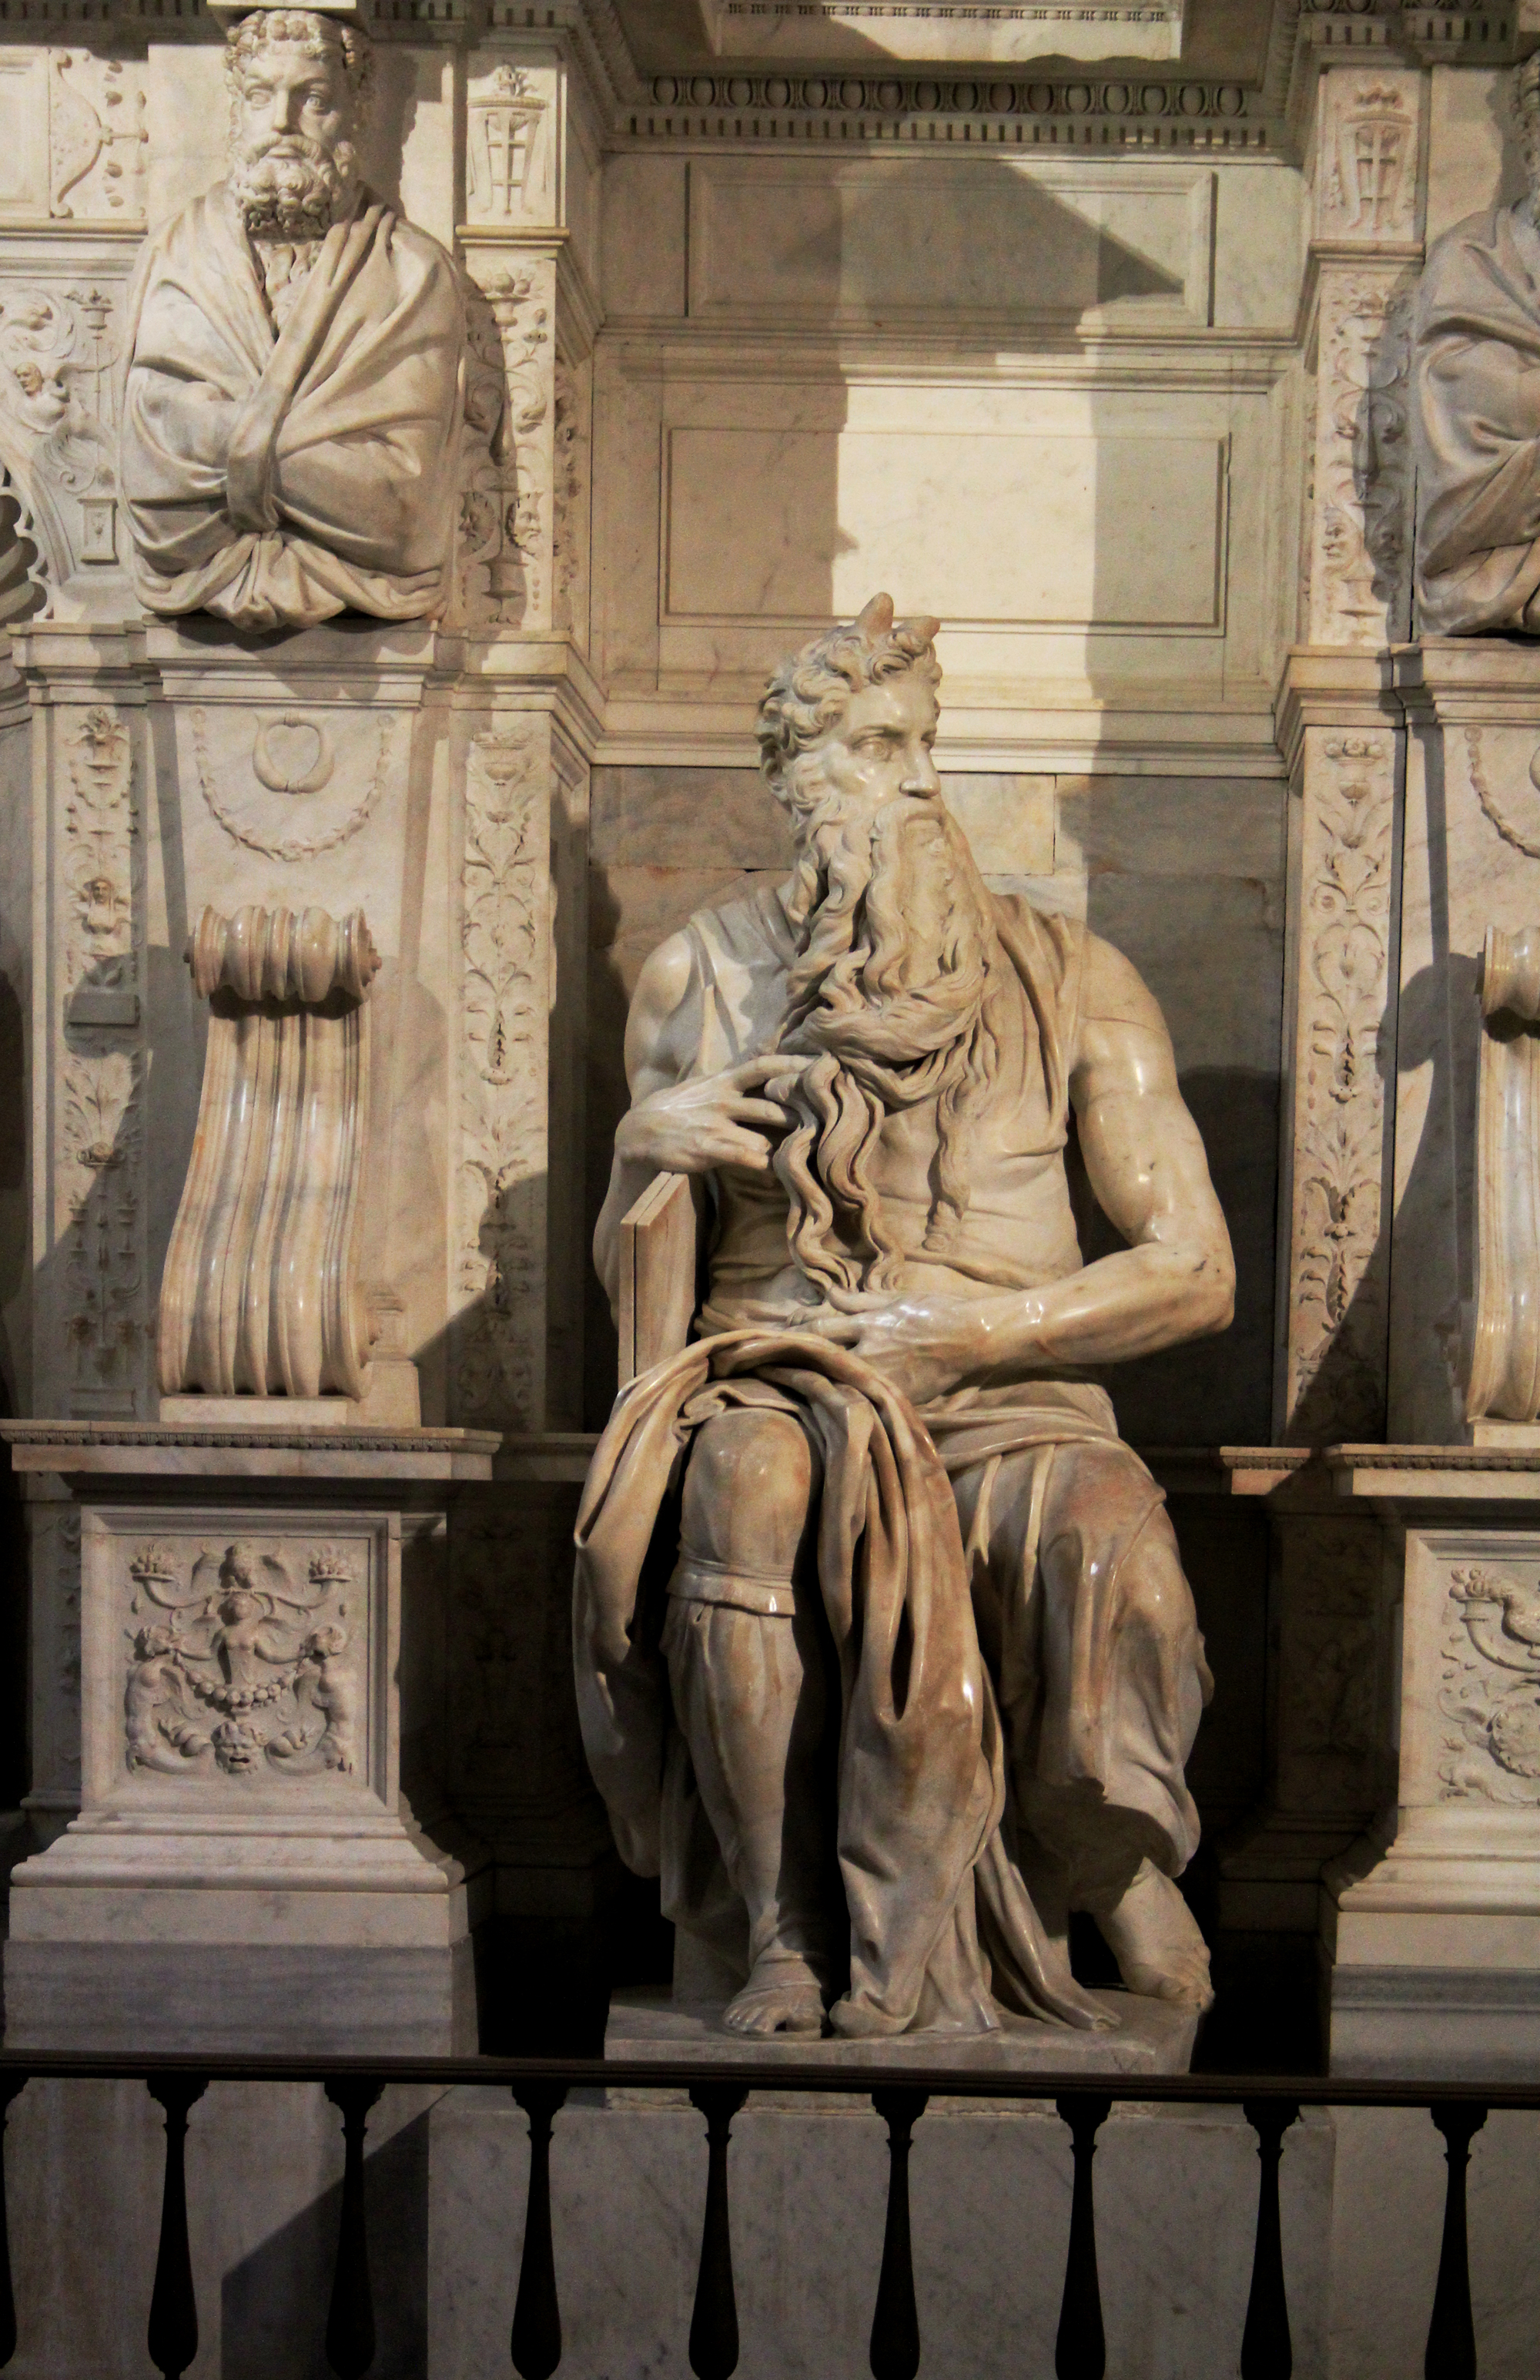 Michelangelo Buonarroti's sculpture  Moses  is housed in the church of San Pietro in Vincoli in Rome.